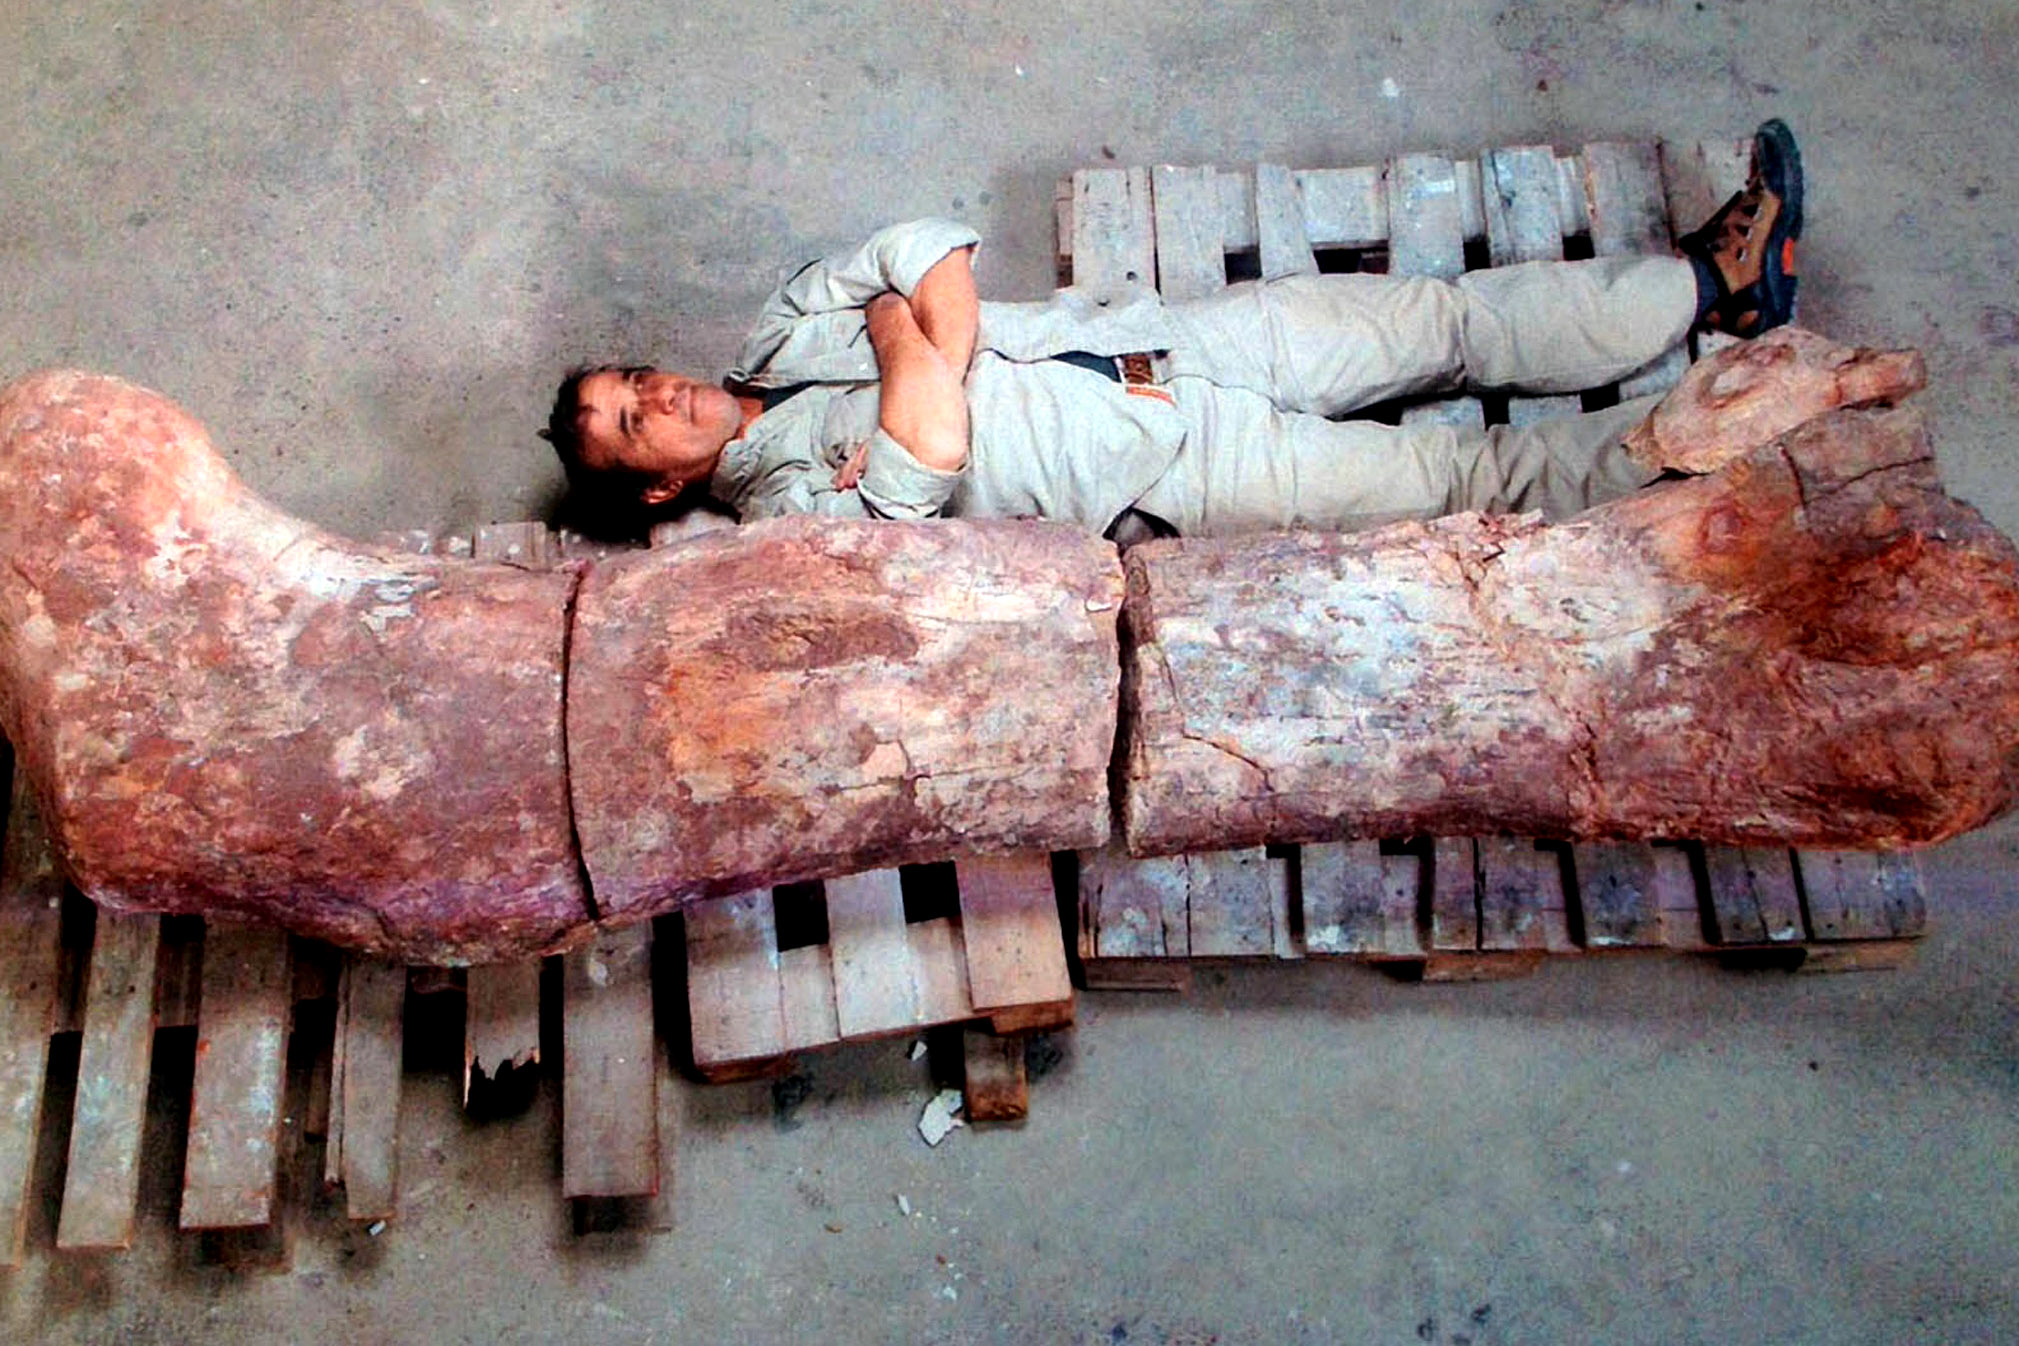 New Dinosaur Found That's Bigger Than Any Dinosaur Ever Discovered